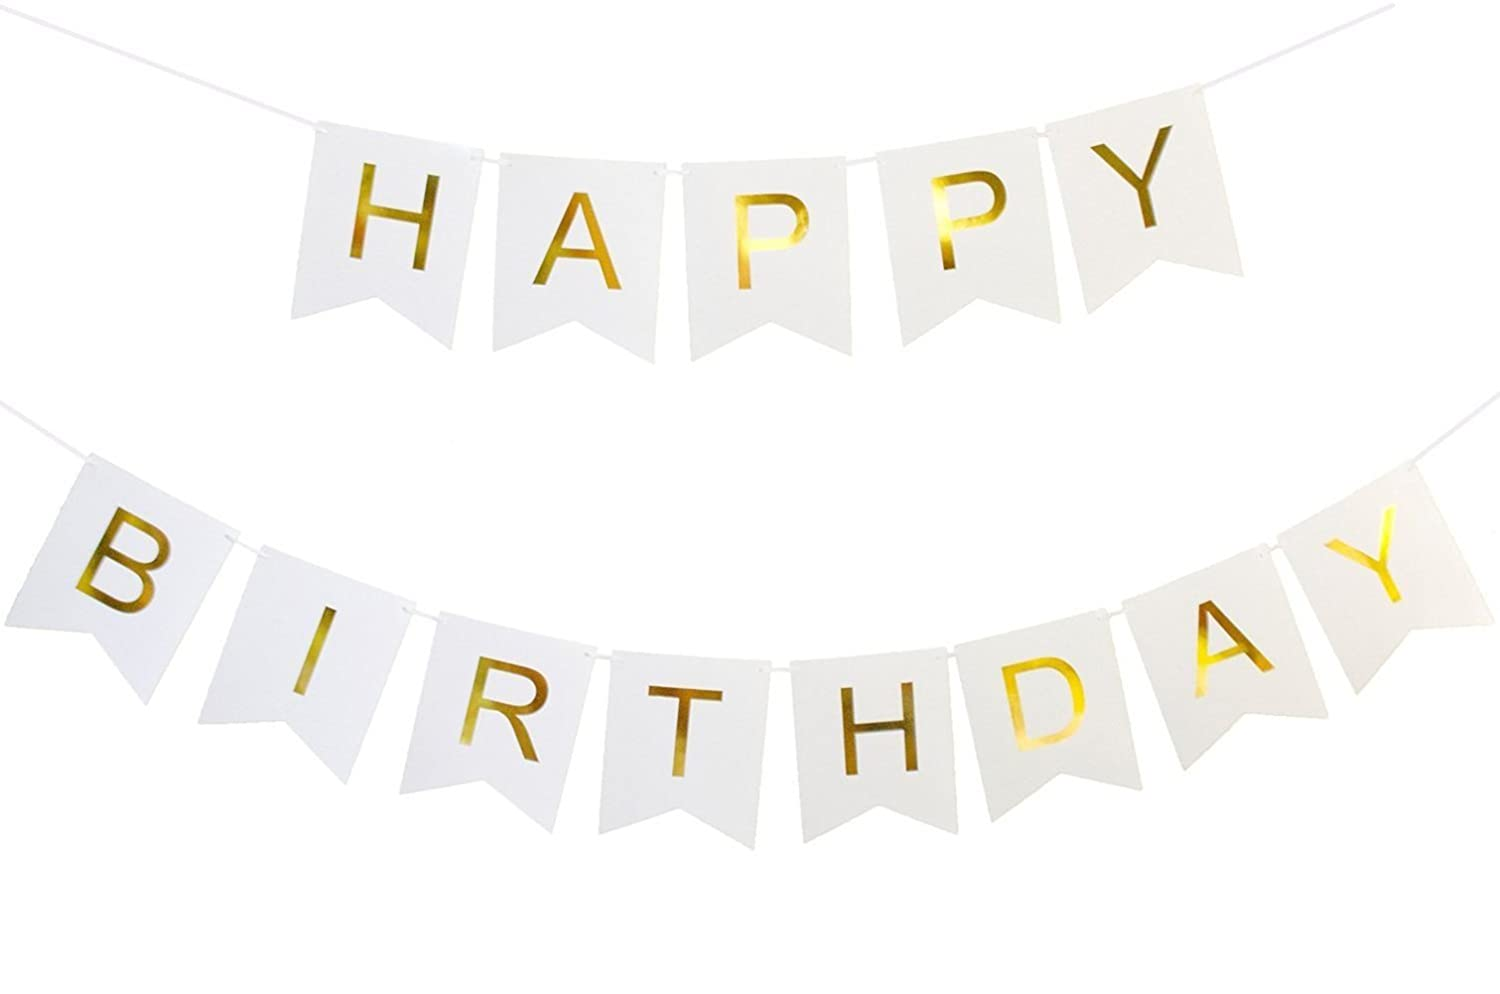 Koker Happy Birthday Bunting Banner Garland with Shiny Letters for Prince Birthday Party Decoration, White Flag  ホワイト B01M0EYAEU